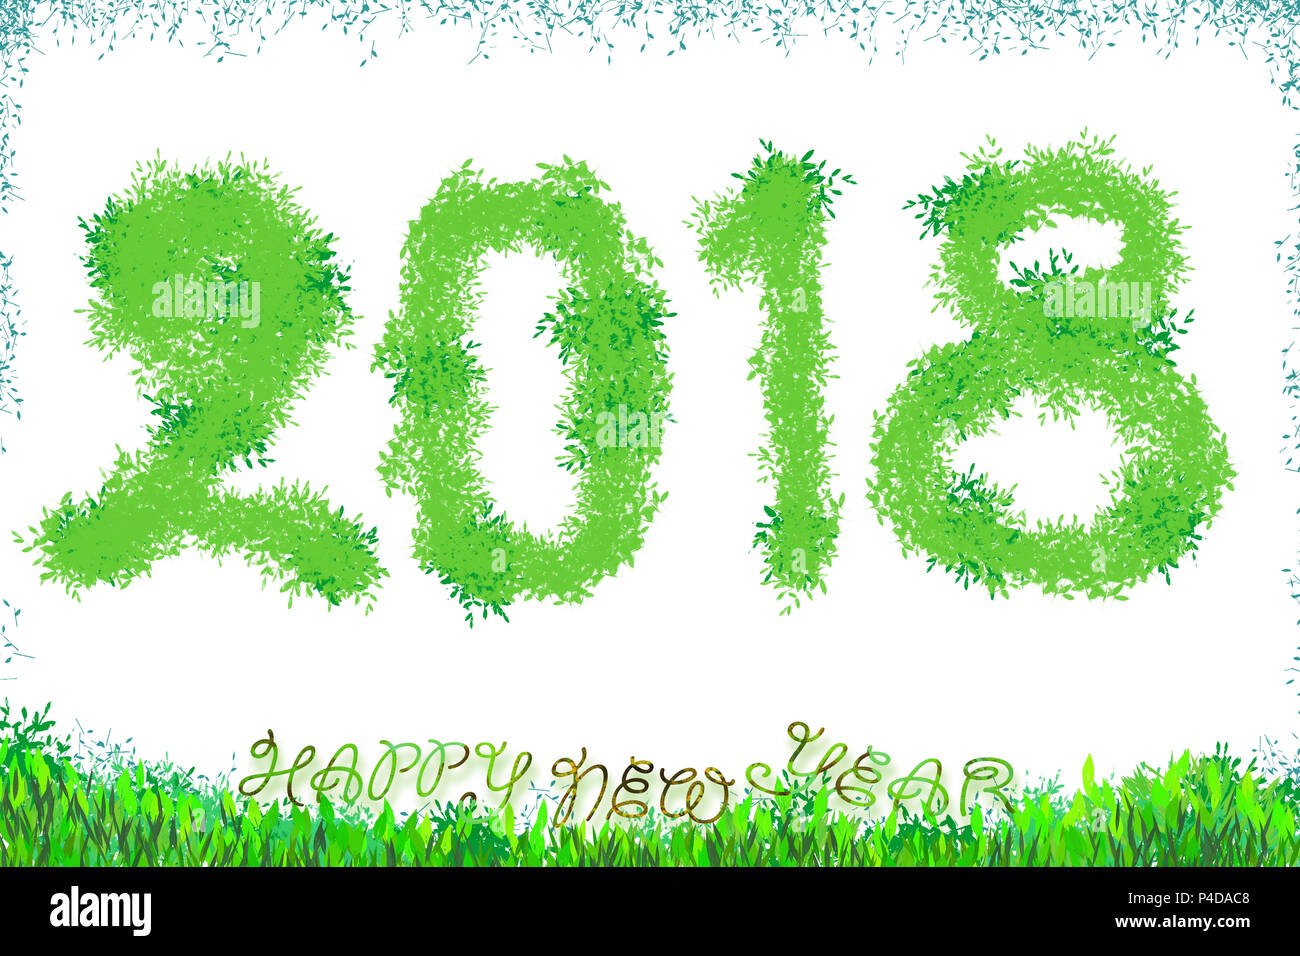 2018 happy new year text calligraphic green leaf design card template creative typography for holiday greeting gift poster calligraphy font style b